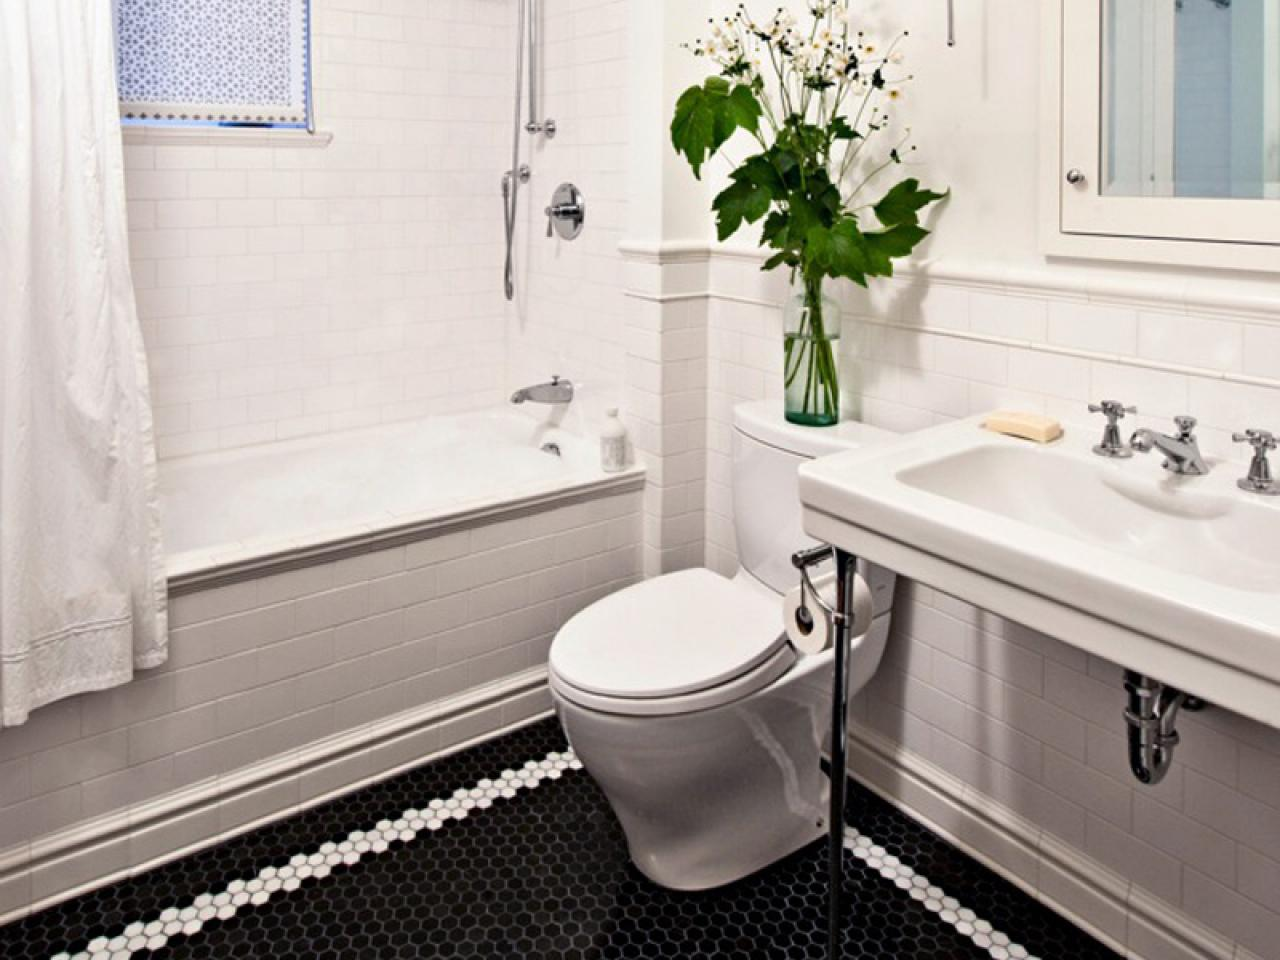 black and white bathroom tile designs 23 ideas and pictures of basketweave bathroom tile 25114